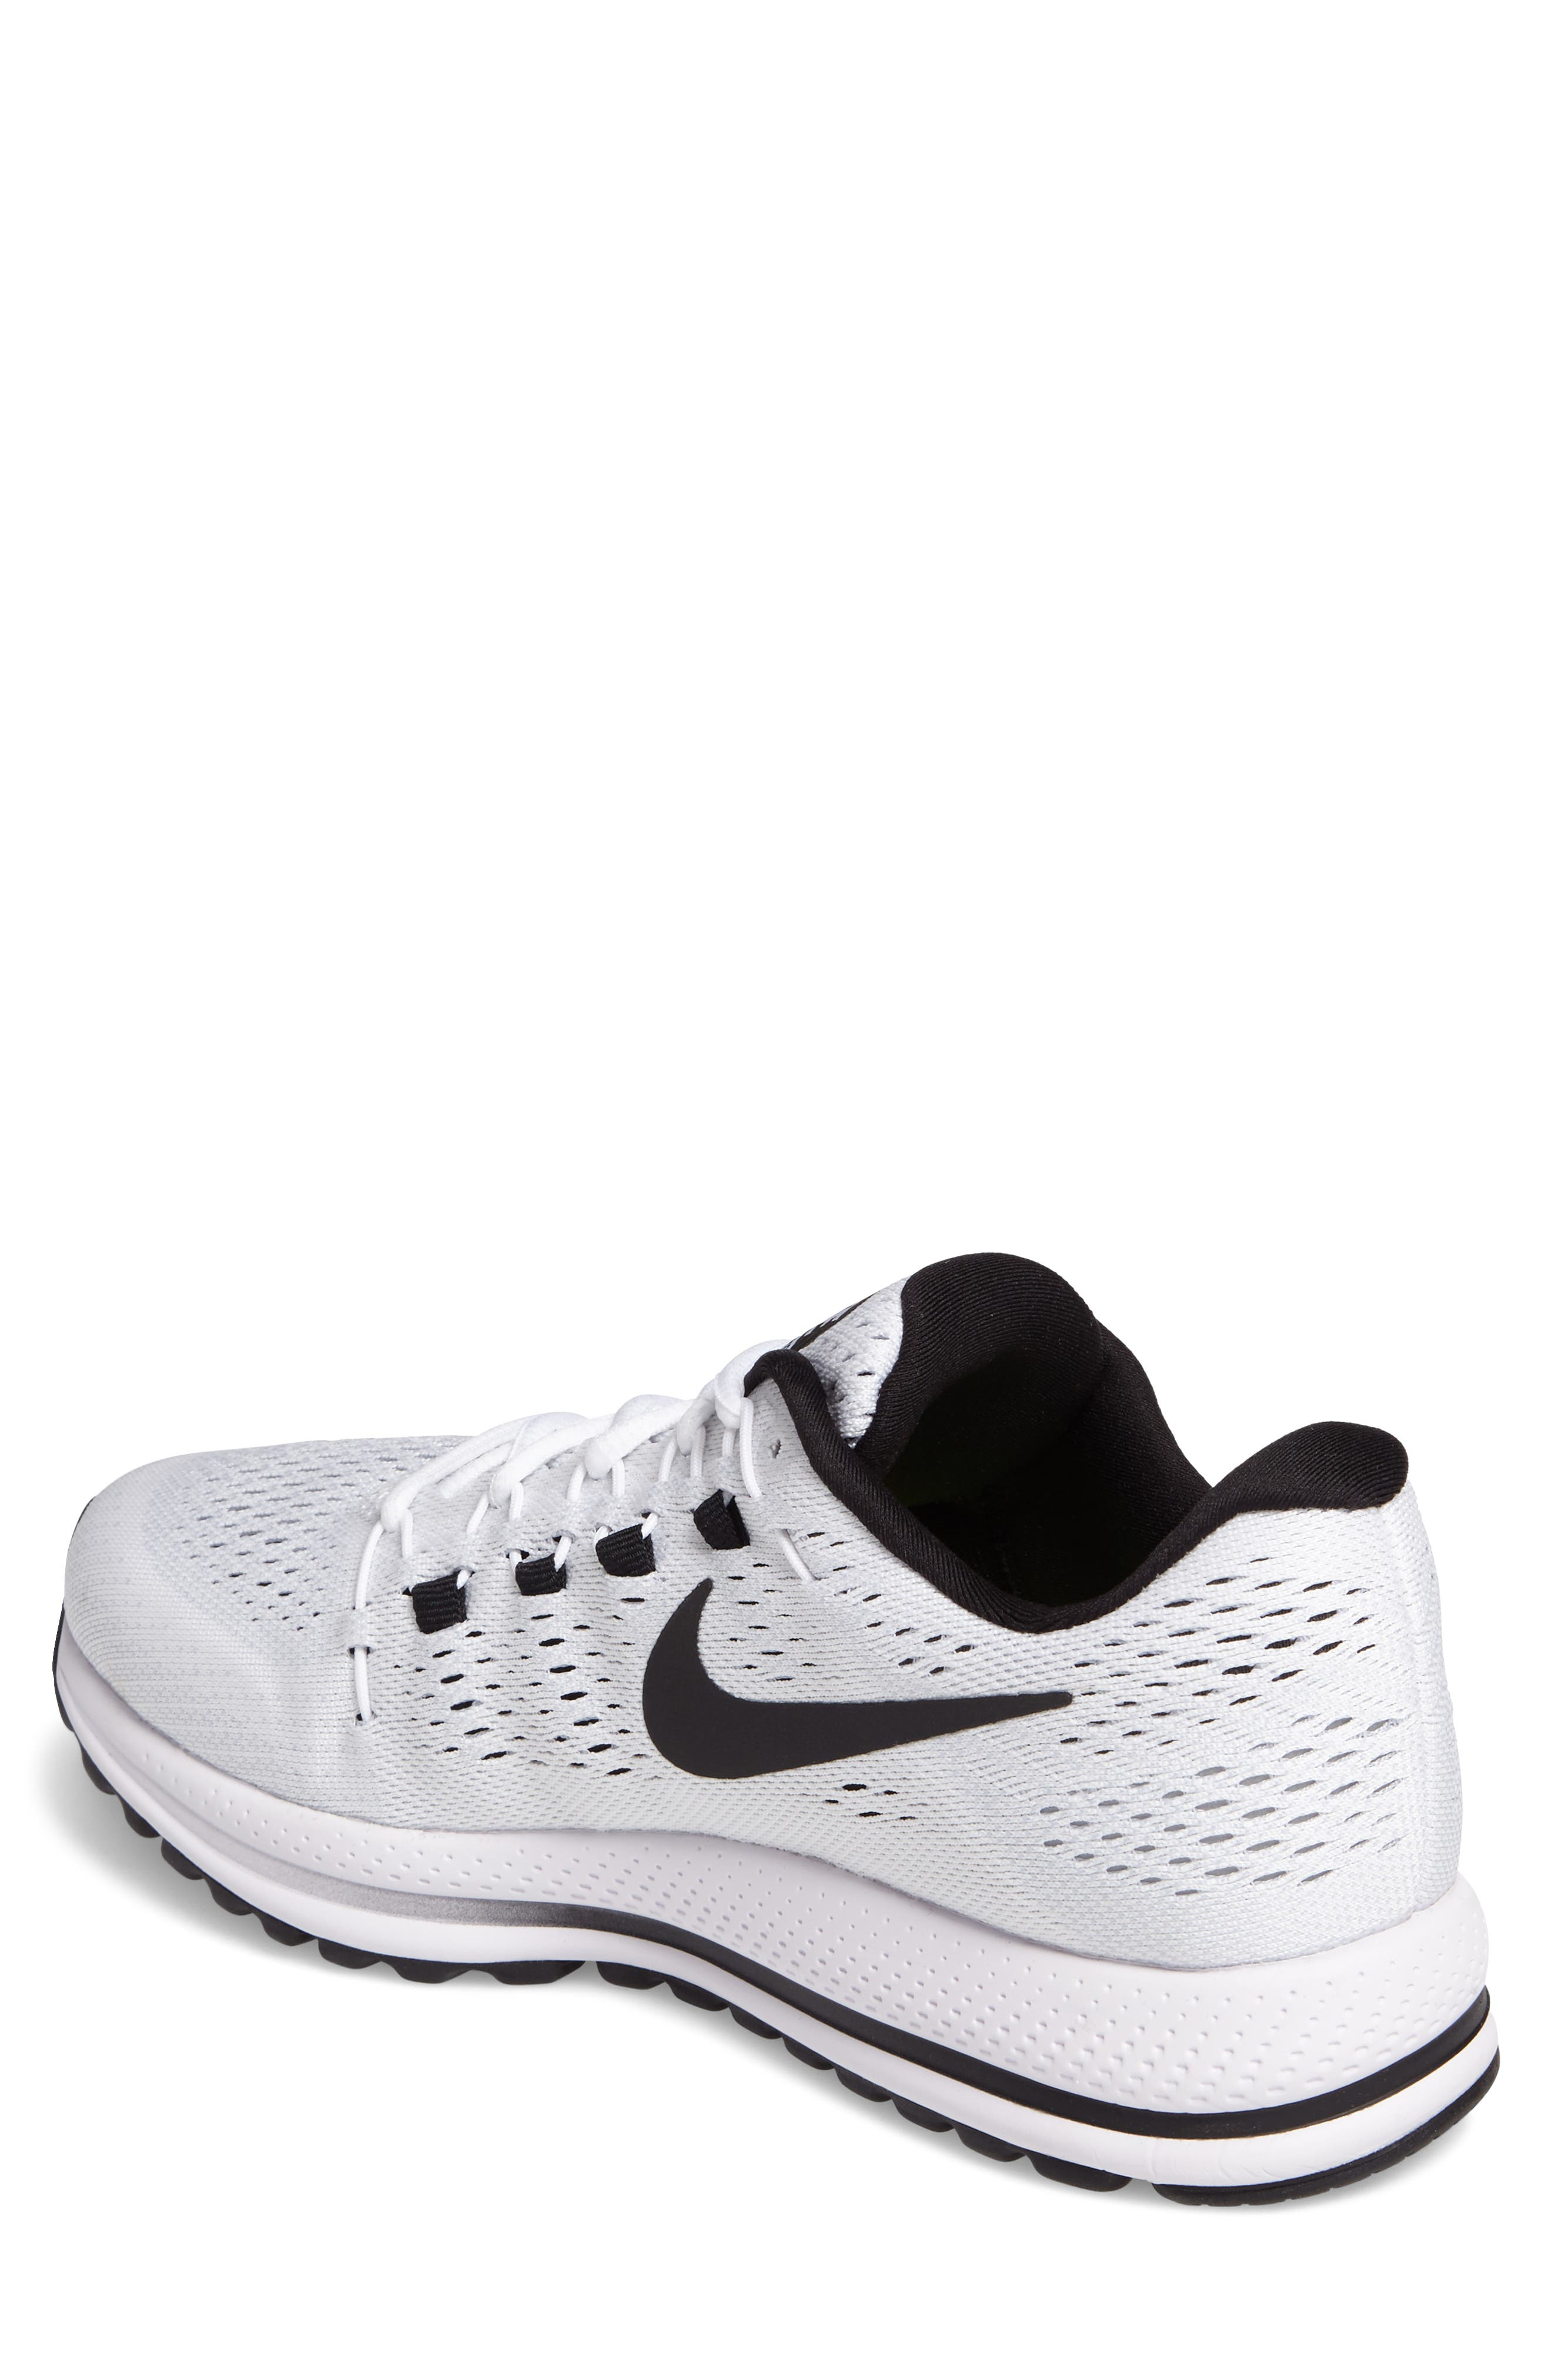 NIKE,                             Air Zoom Vomero 12 Running Shoe,                             Alternate thumbnail 2, color,                             100